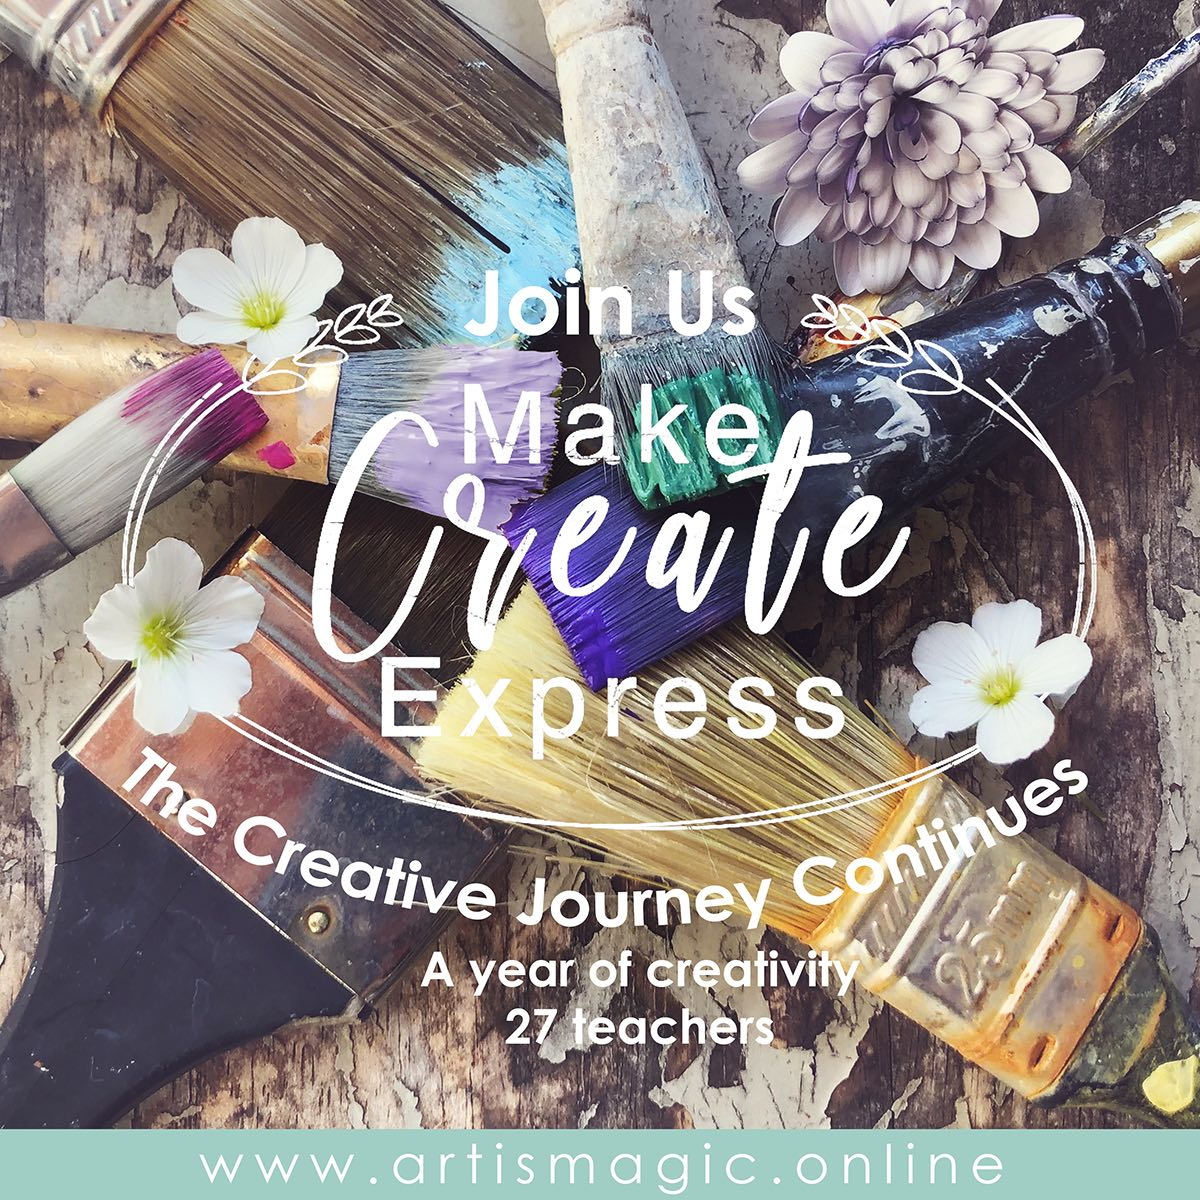 Make Create Express: The Creative Journey Continues, online art and creativity course